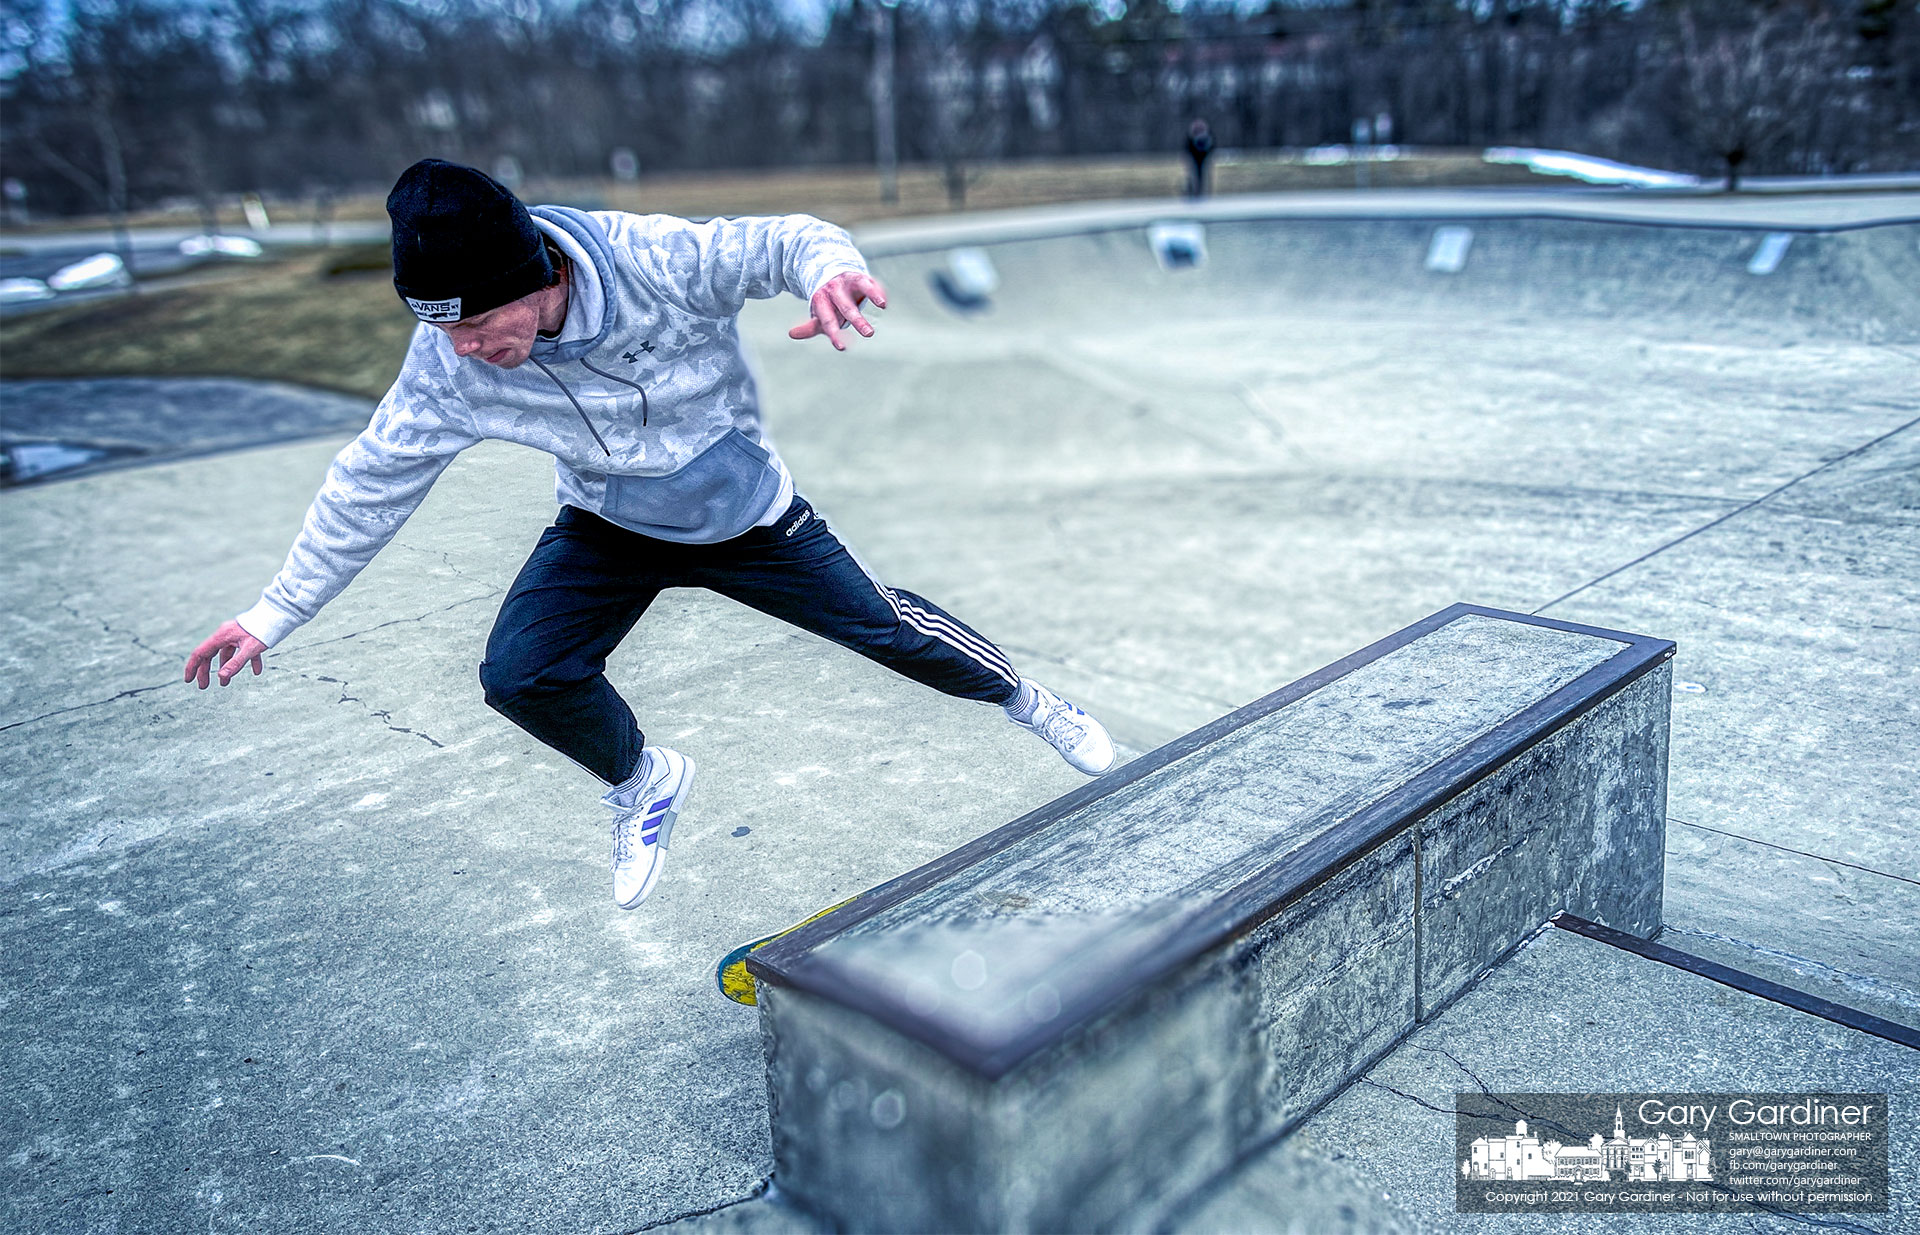 A skater steadies himself after failing on grinding one of the sections of the Westerville Skatepark on a cool late February afternoon. My Final Photo for Feb. 26, 2021.